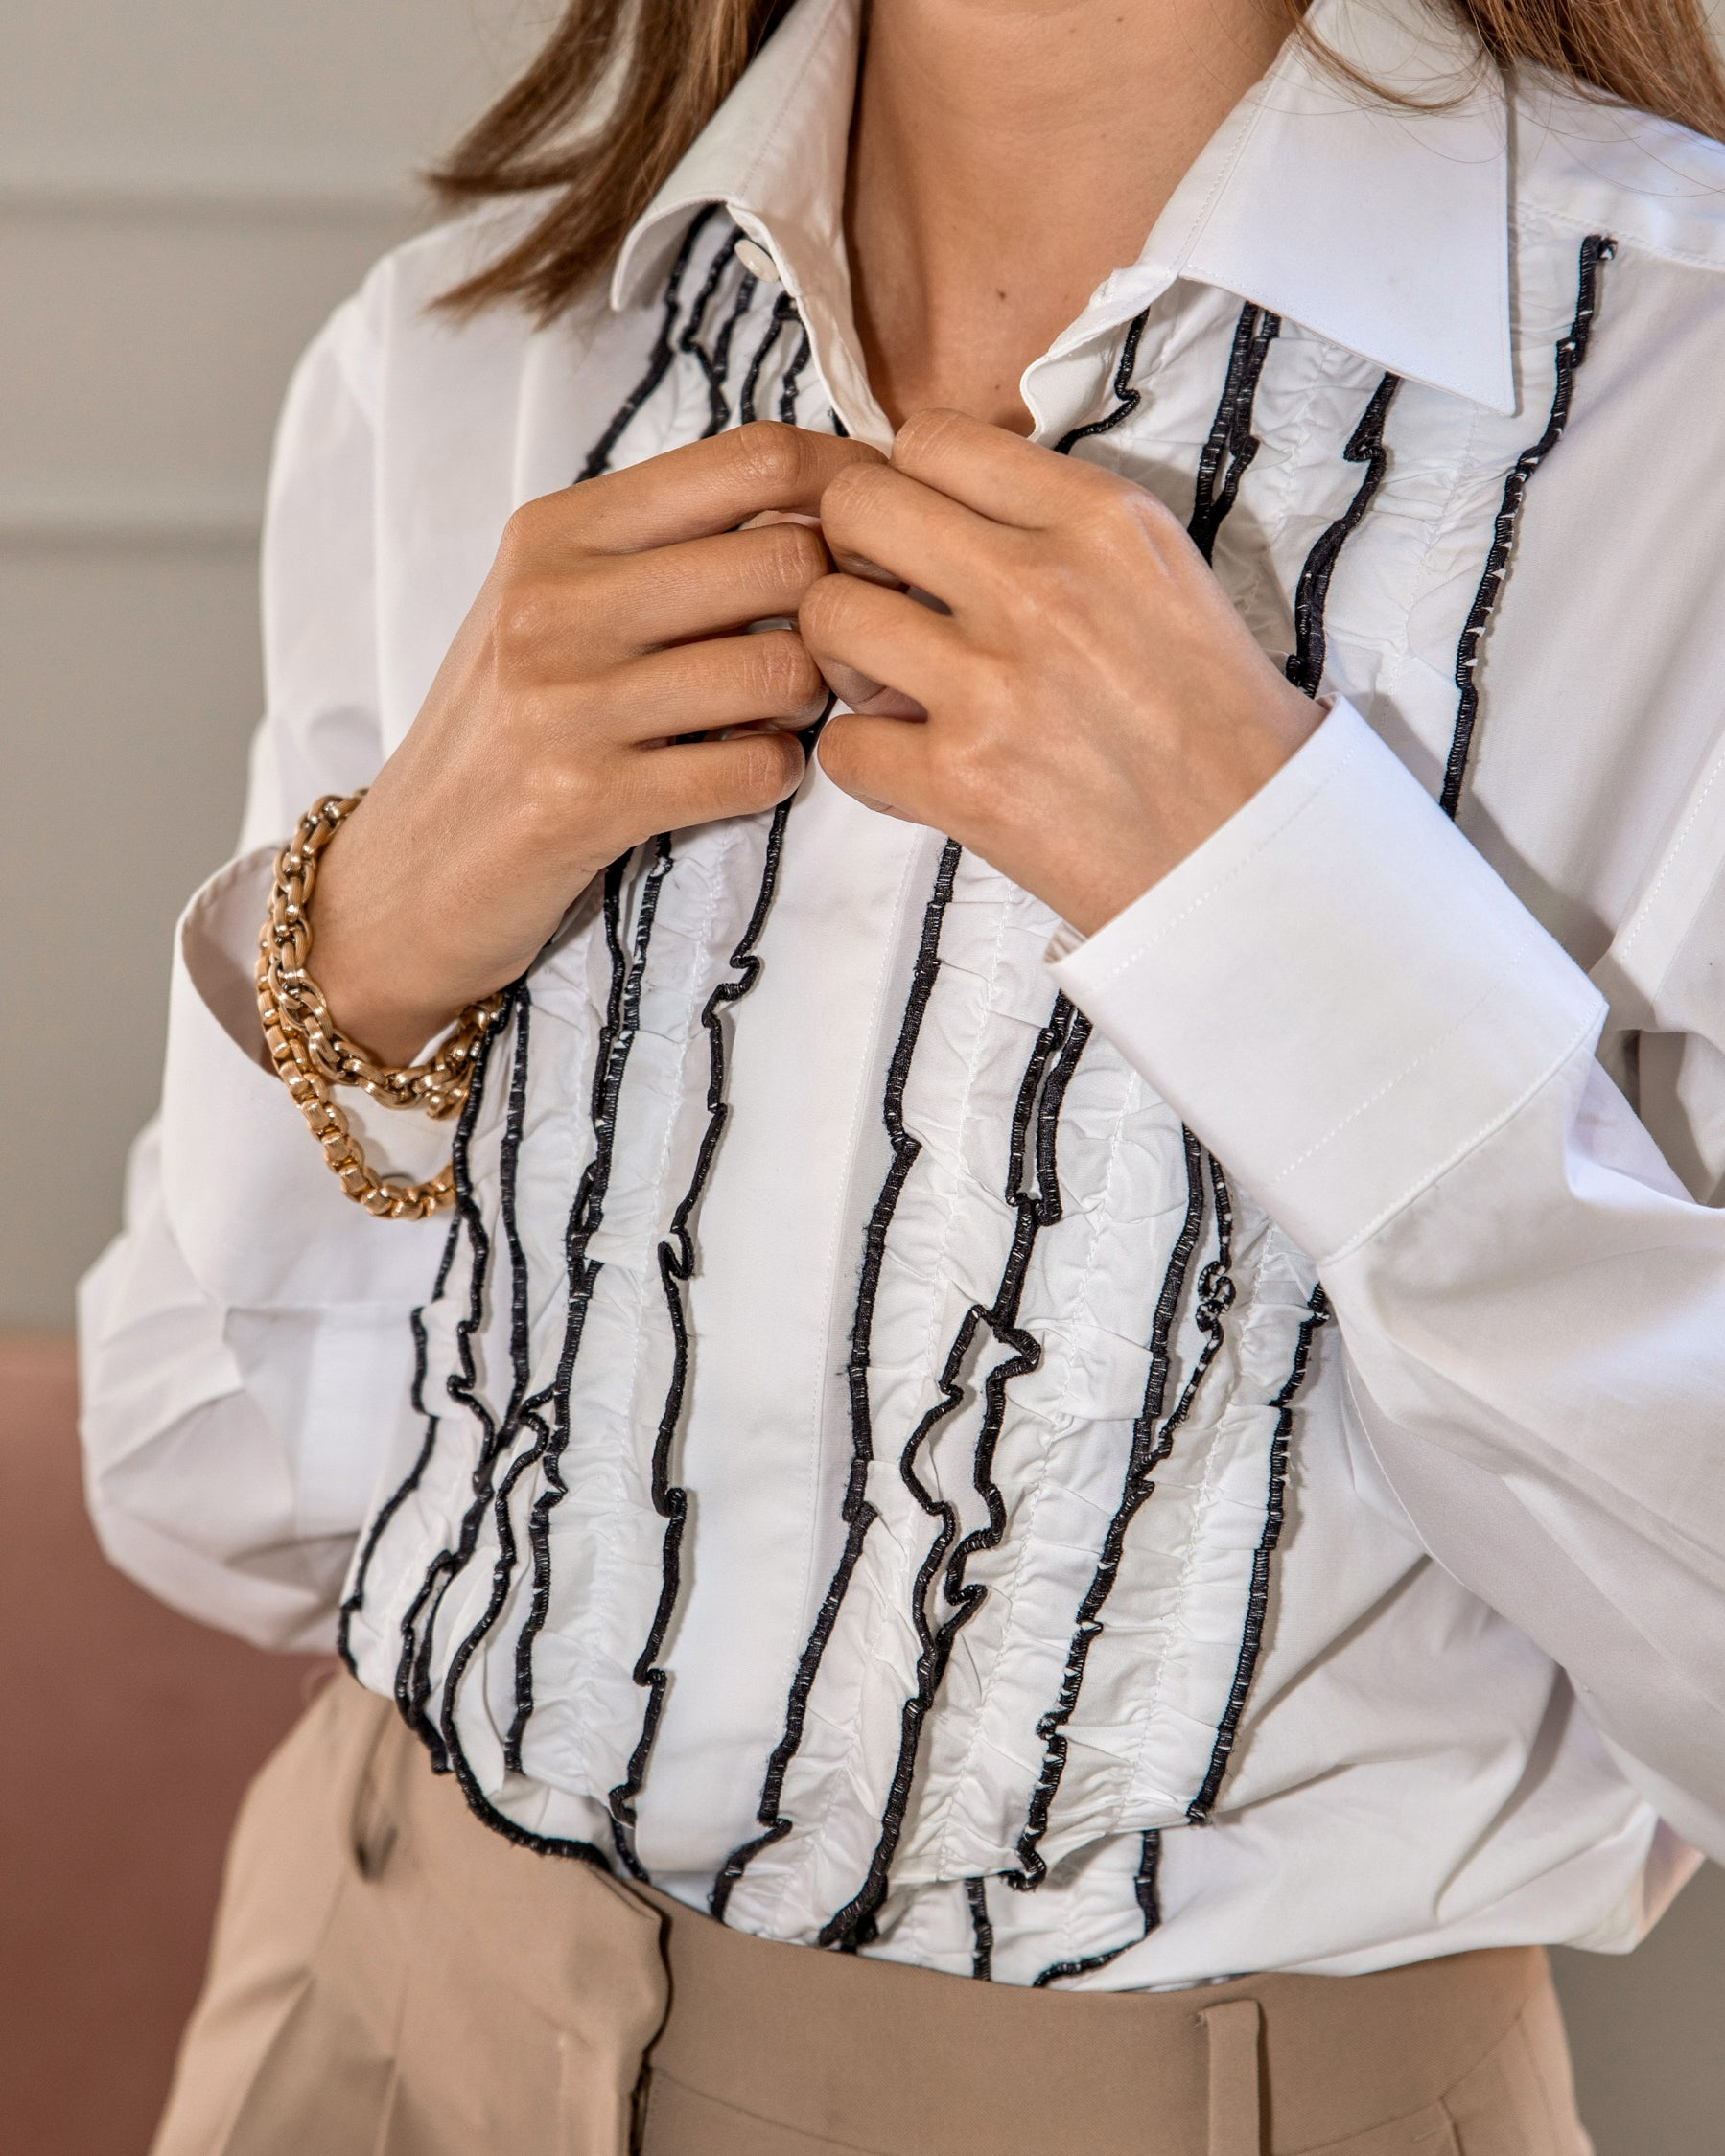 WOMEN'S MULTI-RUFFLED WHITE SHIRT